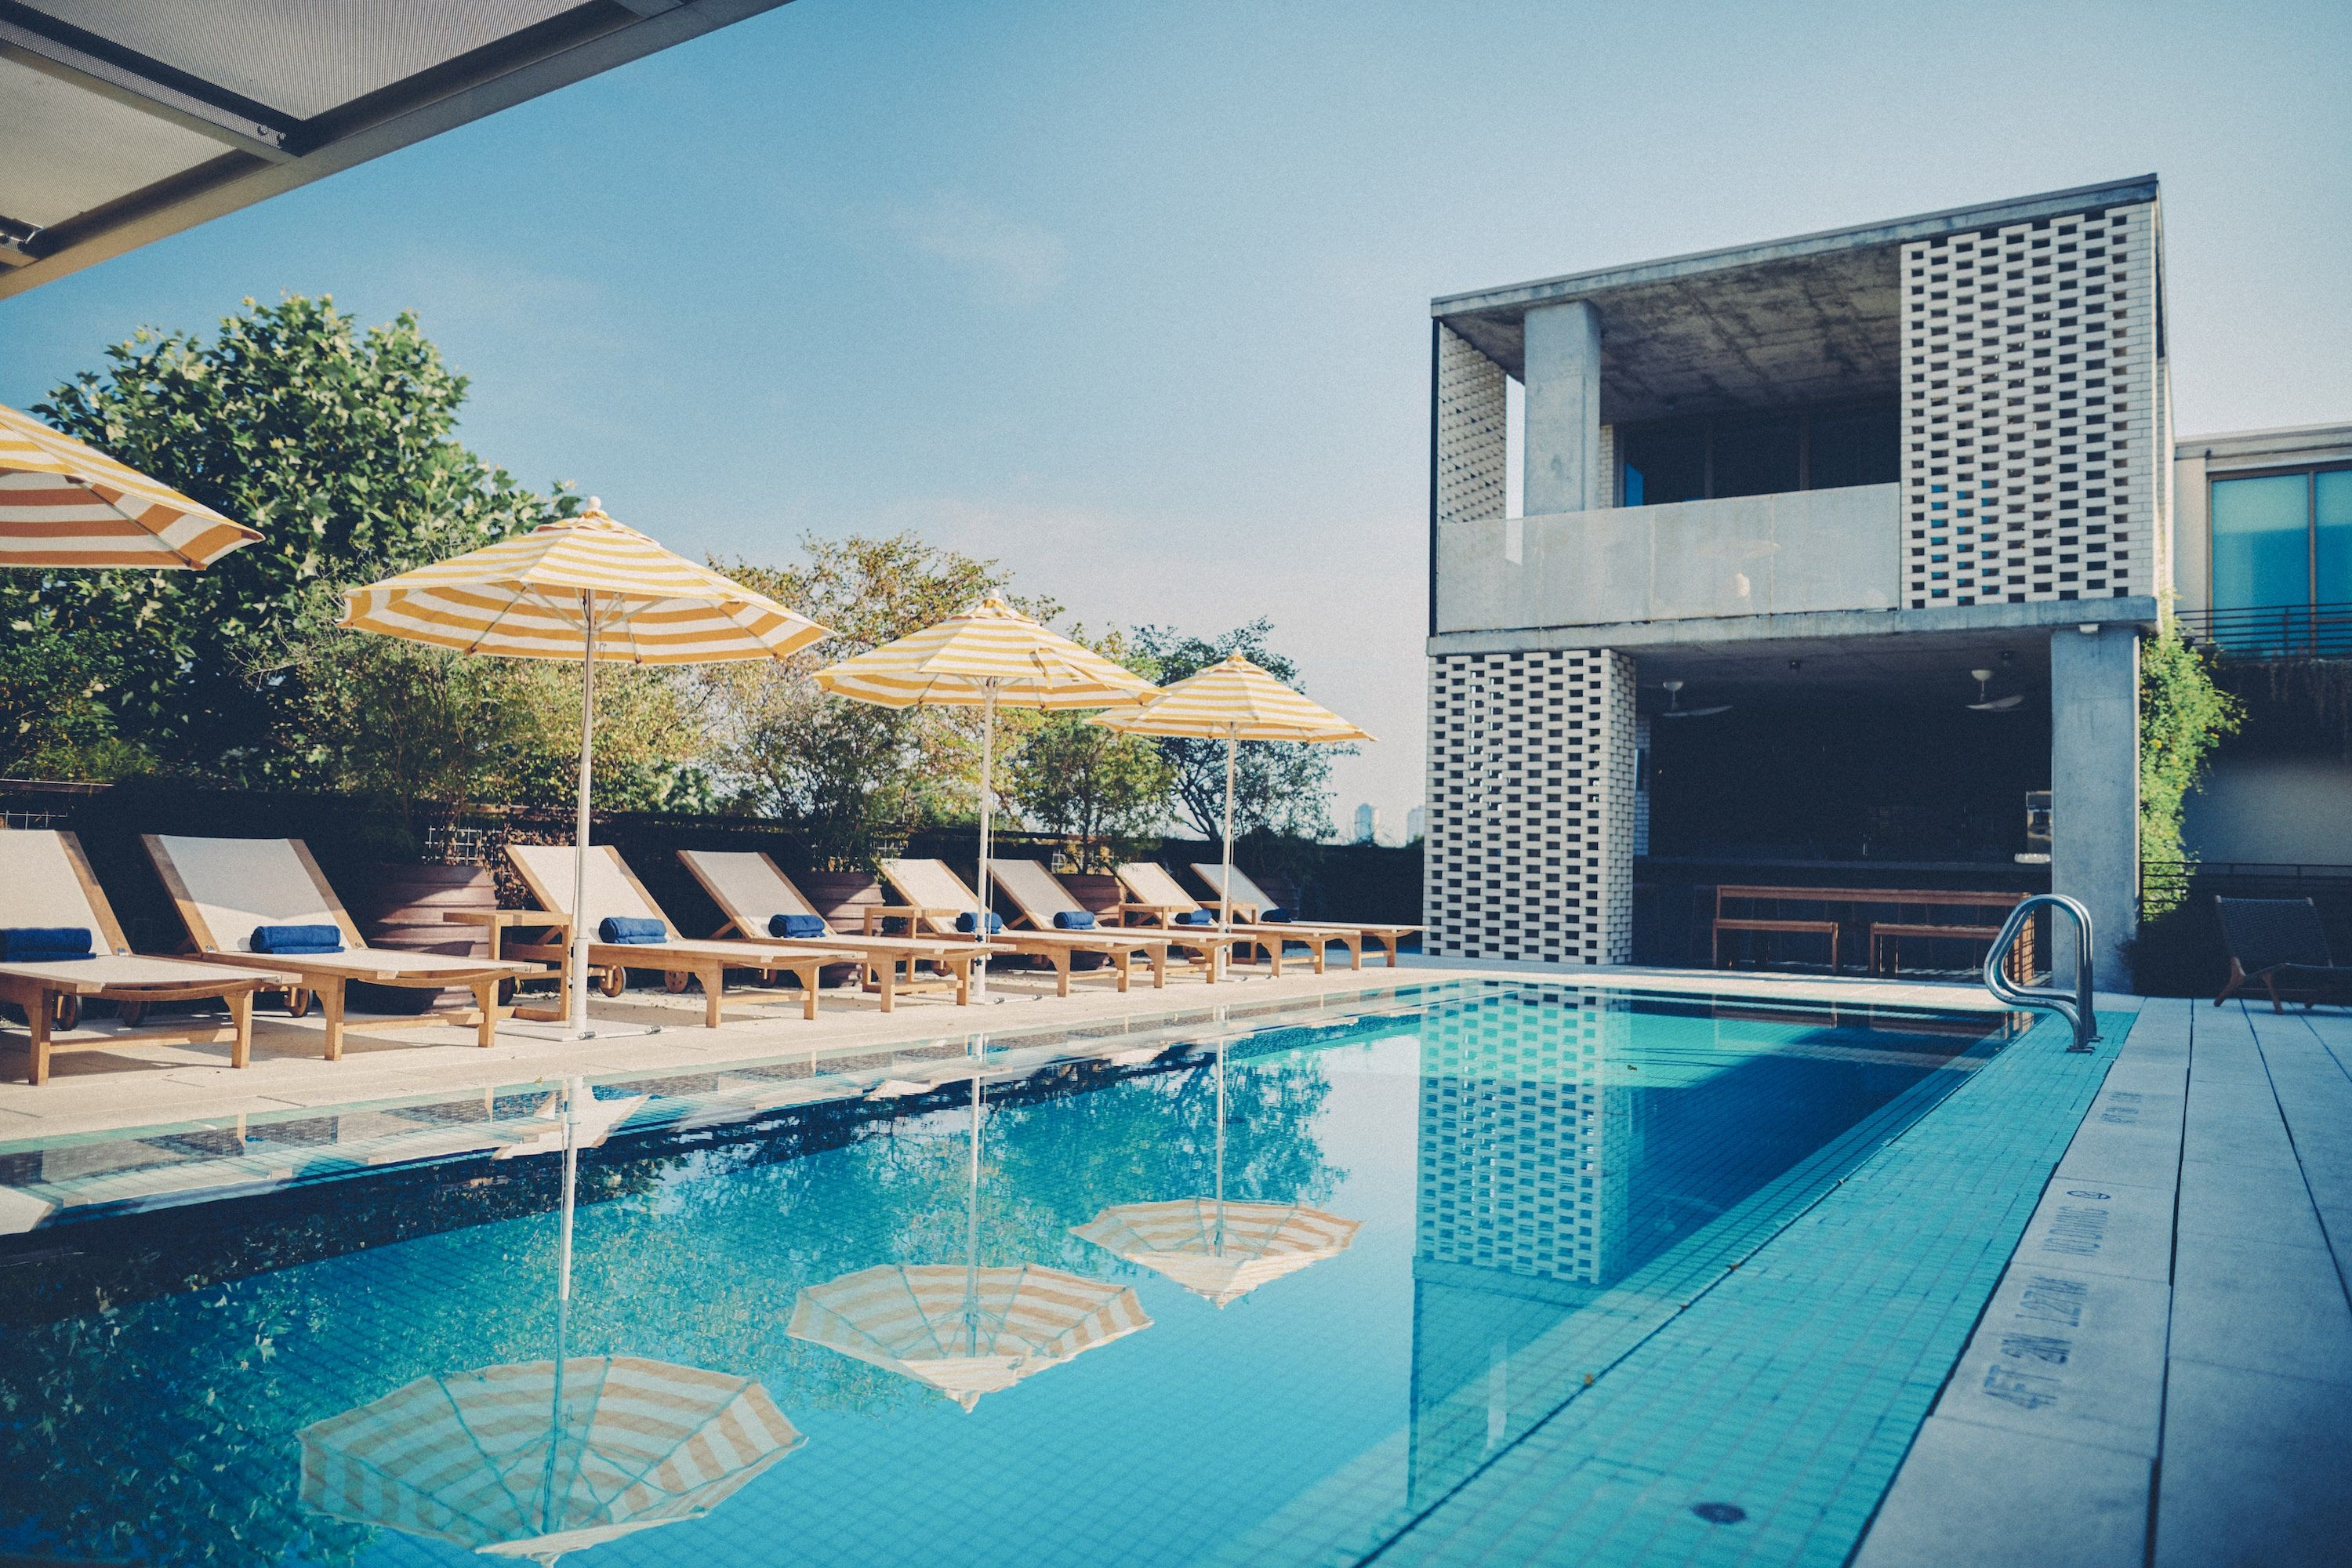 Rooftop pool at South Congress Hotel